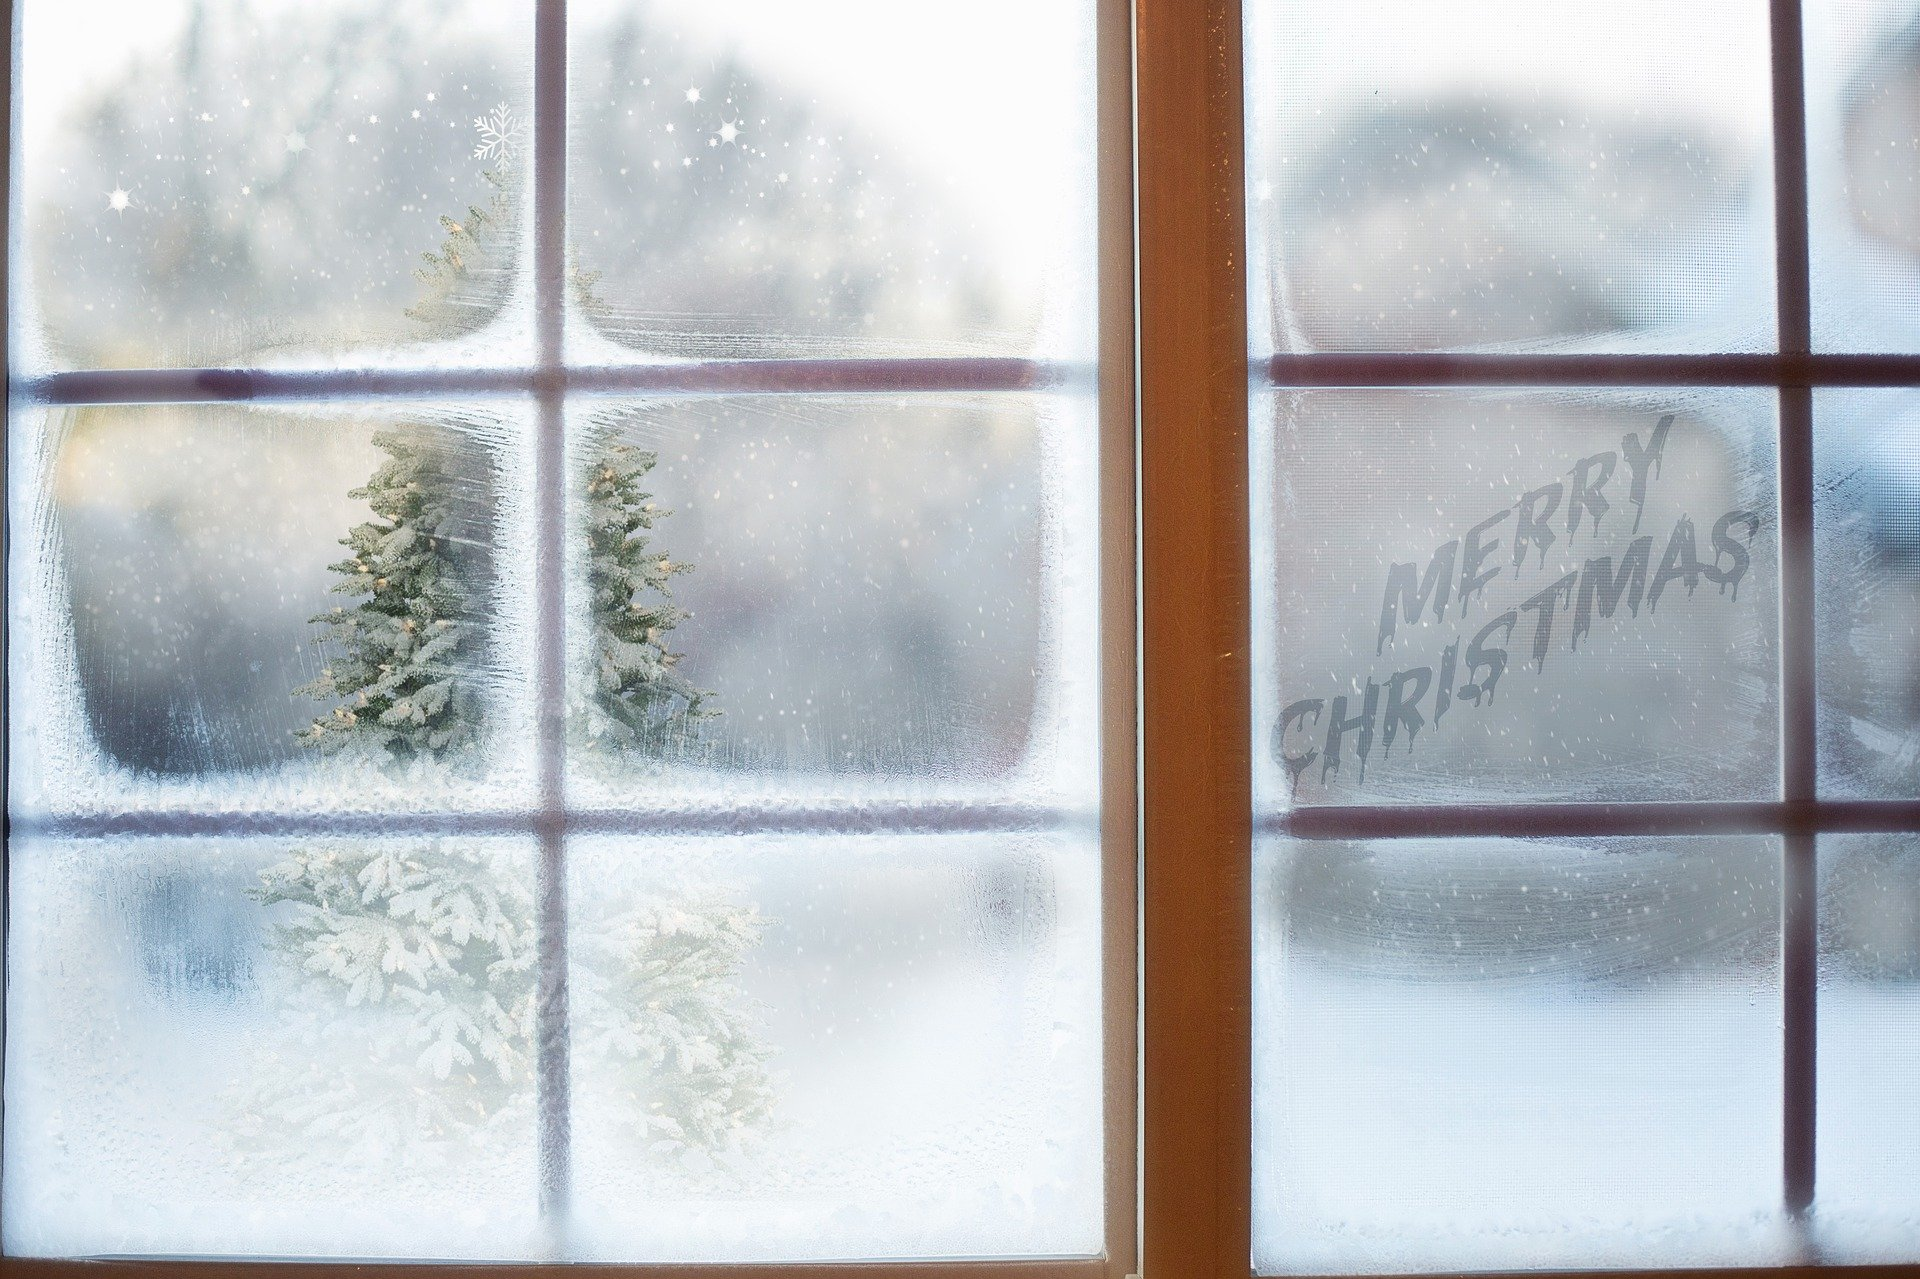 frosted window with Merry Christmas sign - get into the Christmas Spirit